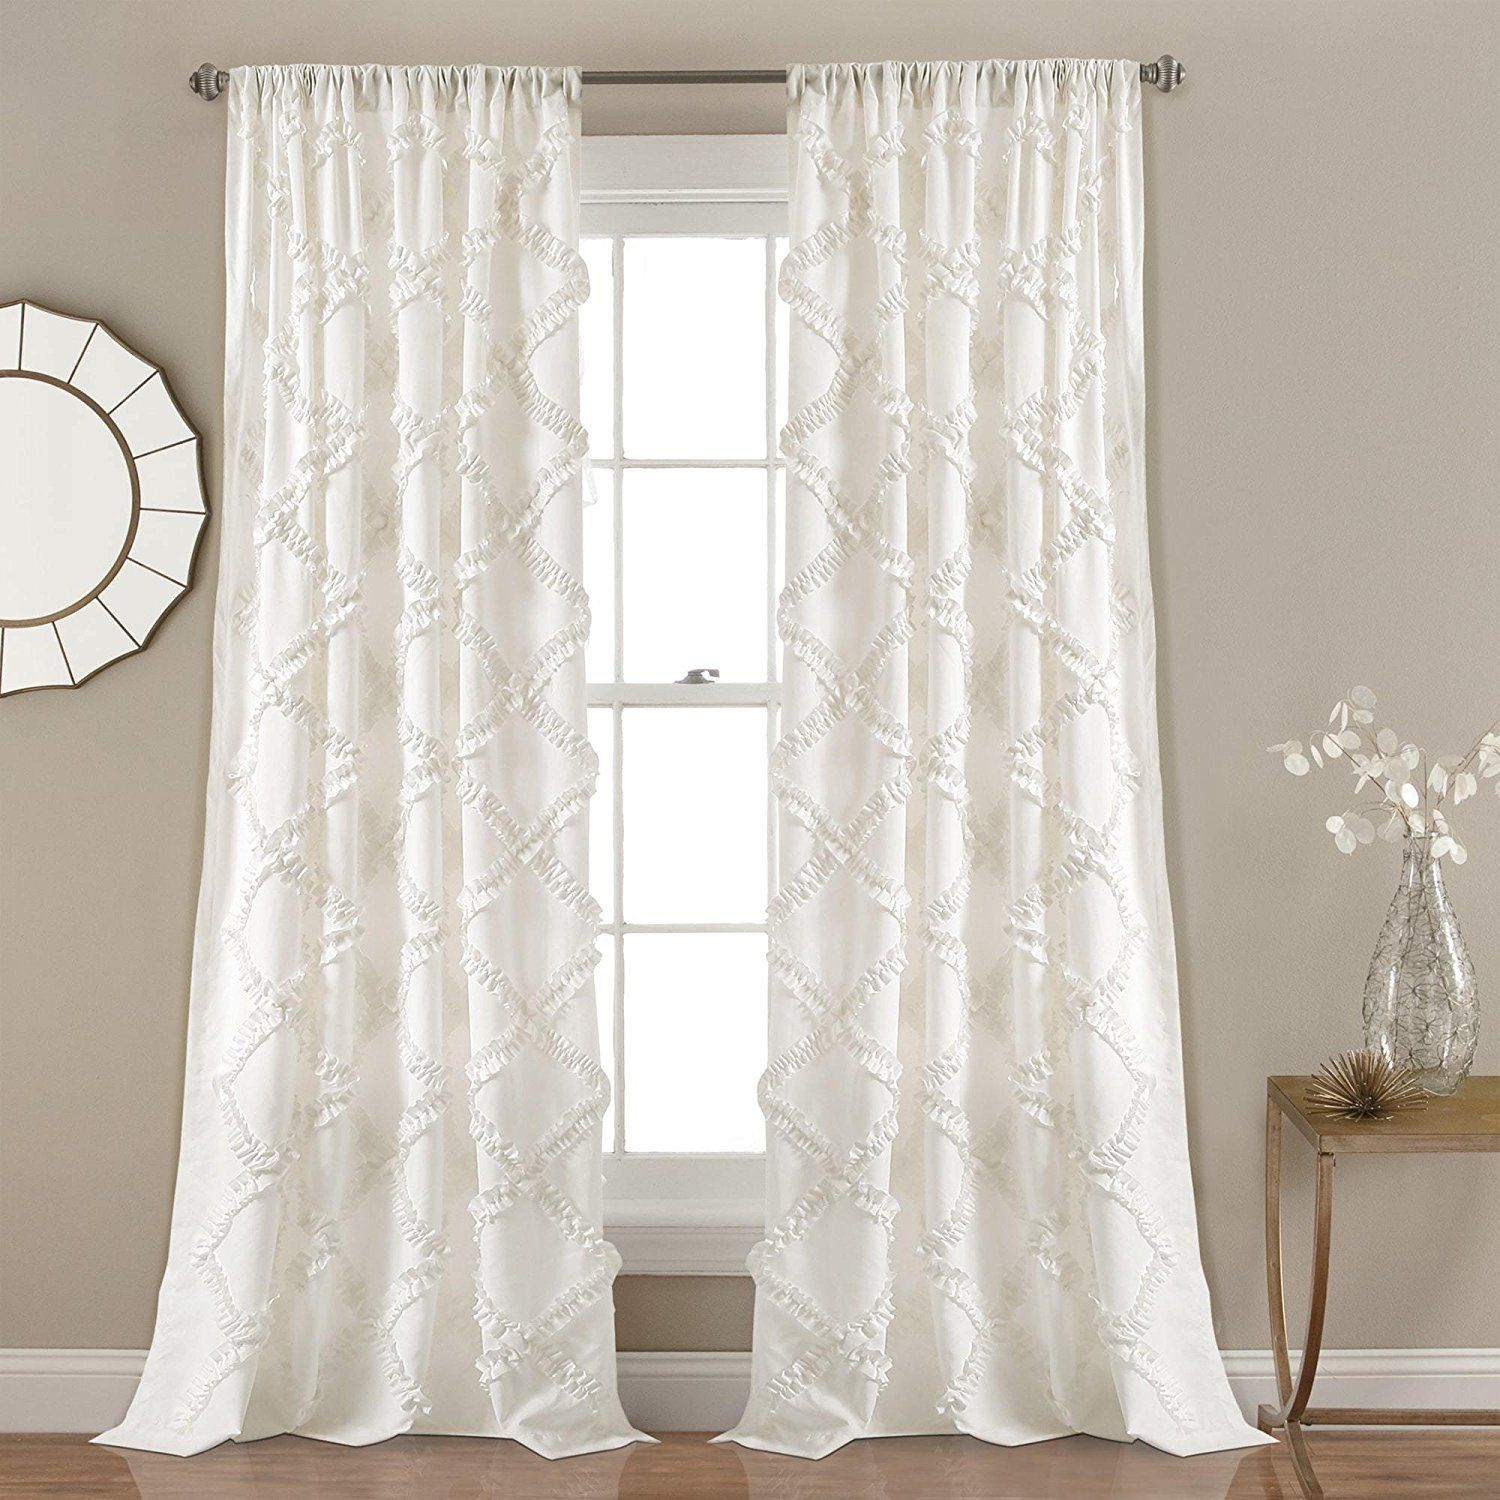 Vesta Textured Curtains Crate And Barrel Curtain Texture Blue